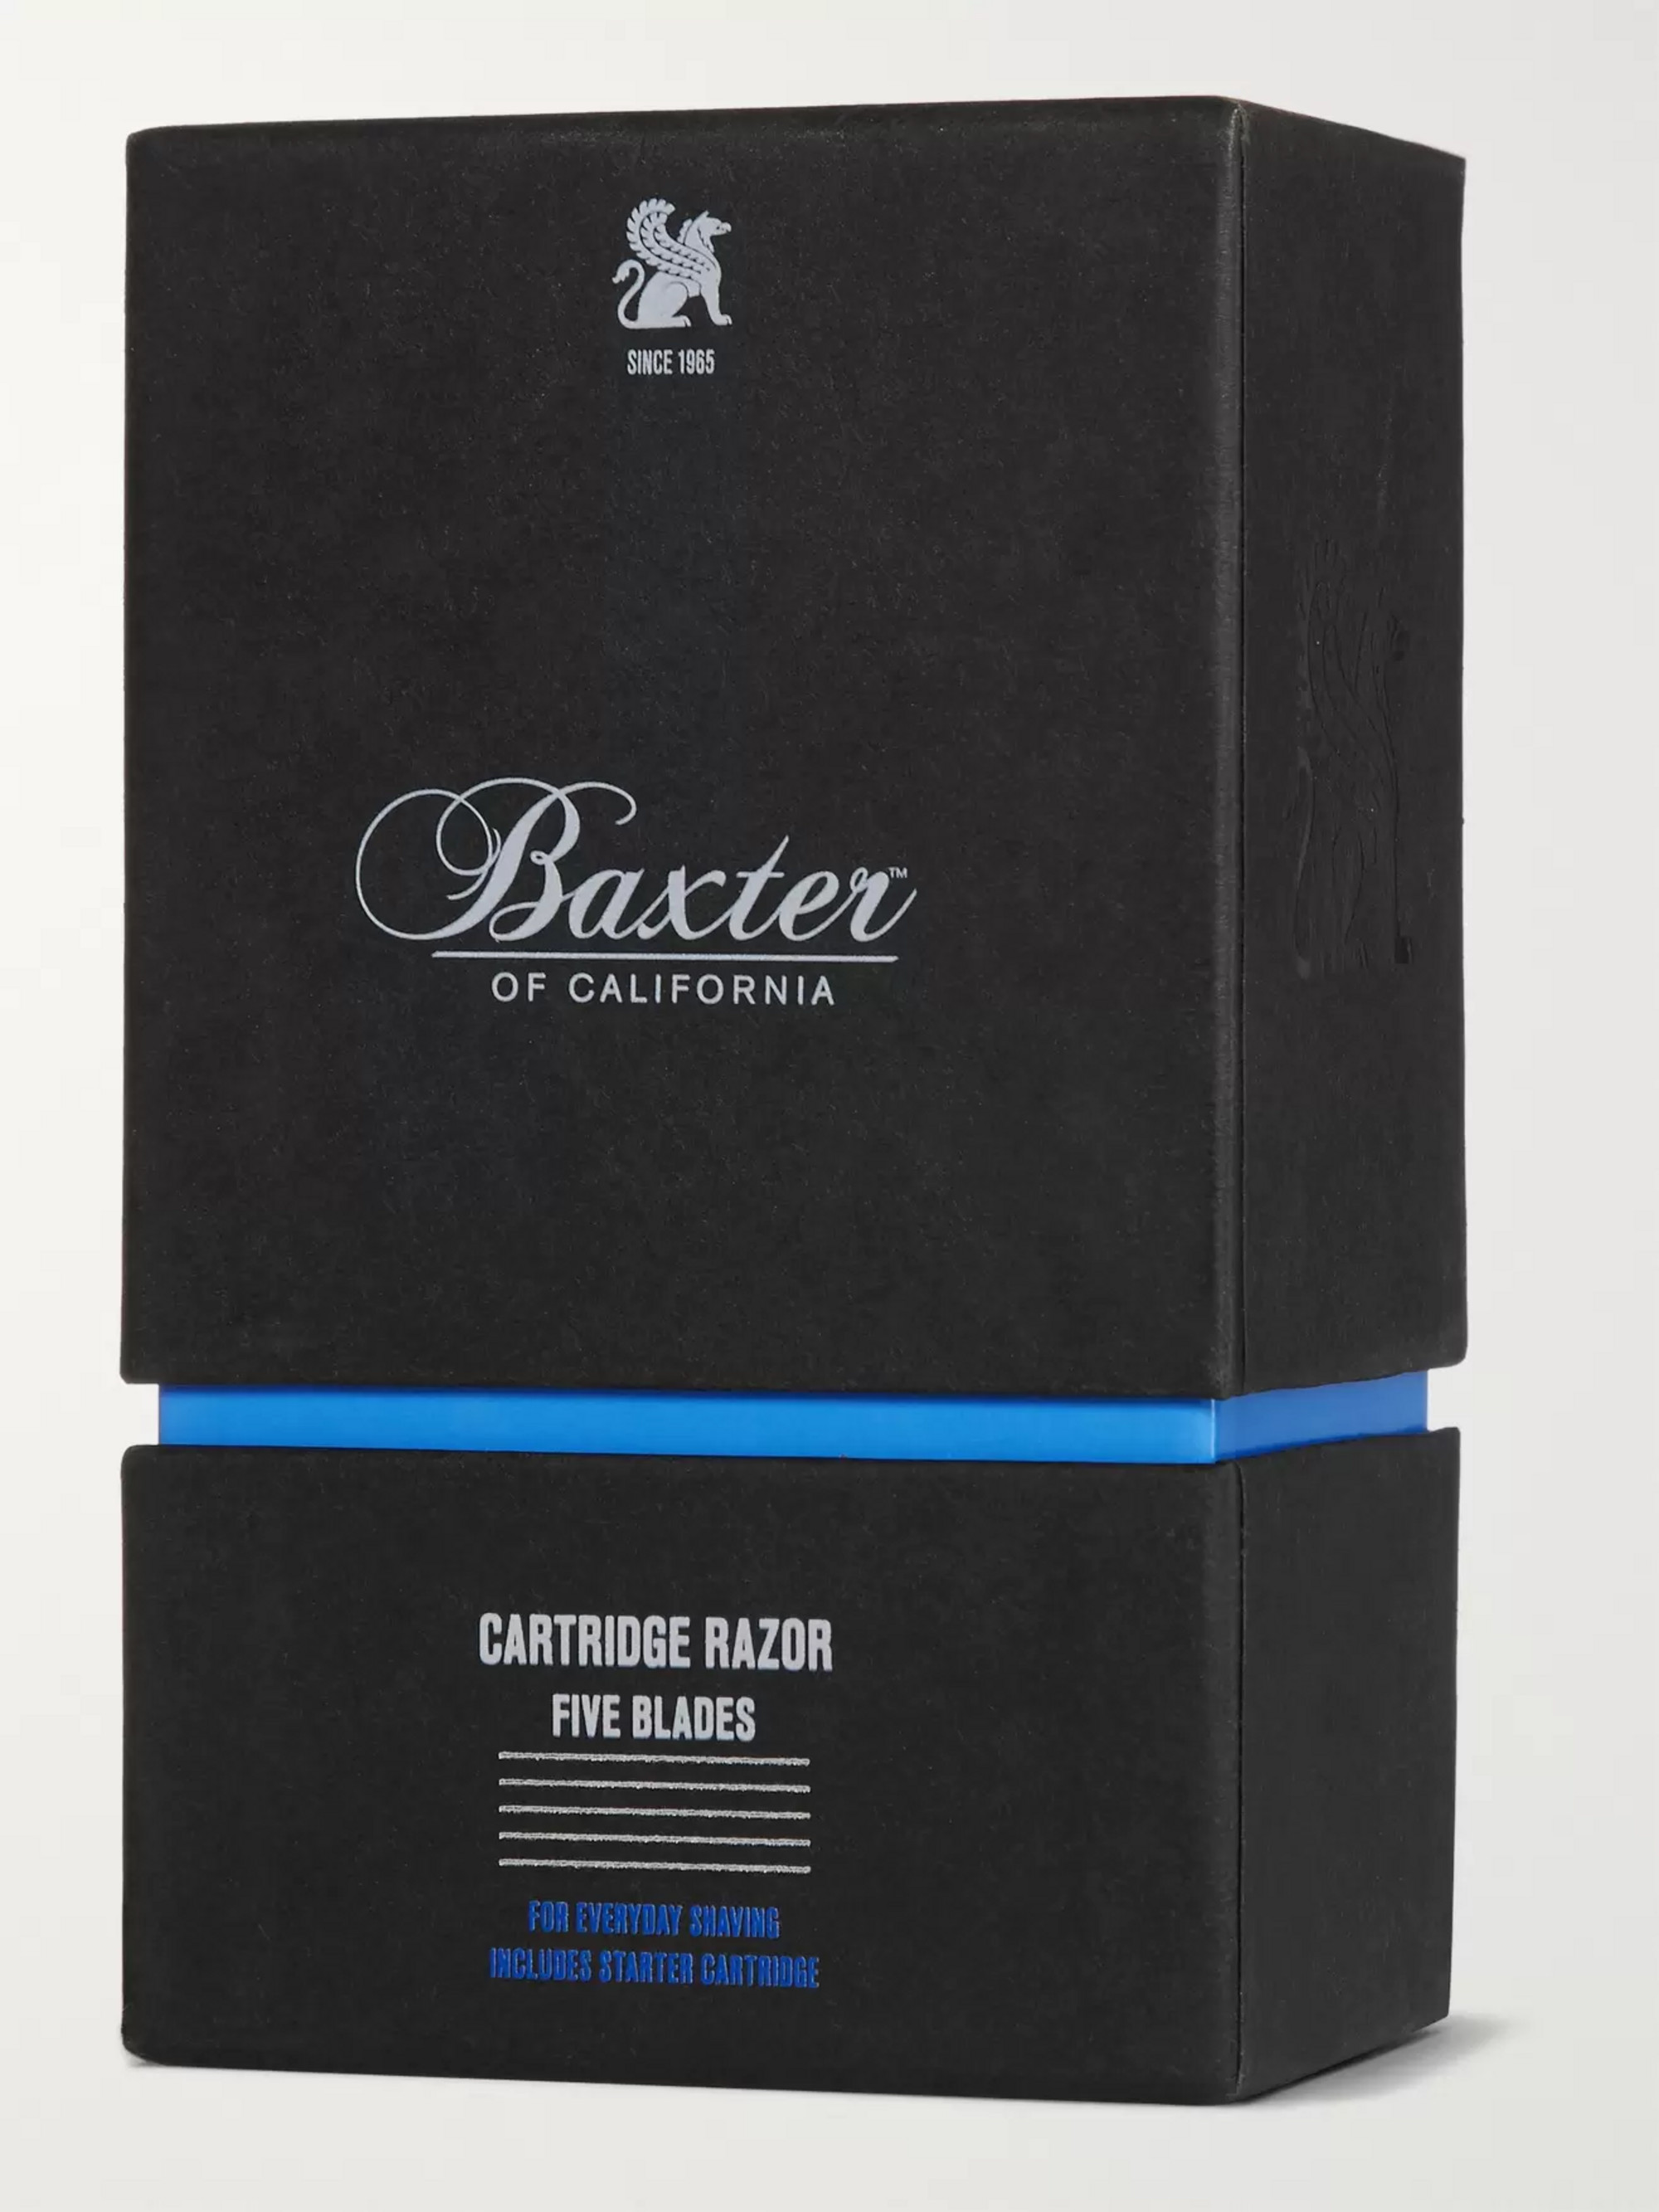 Baxter of California Five-Blade Cartridge Razor